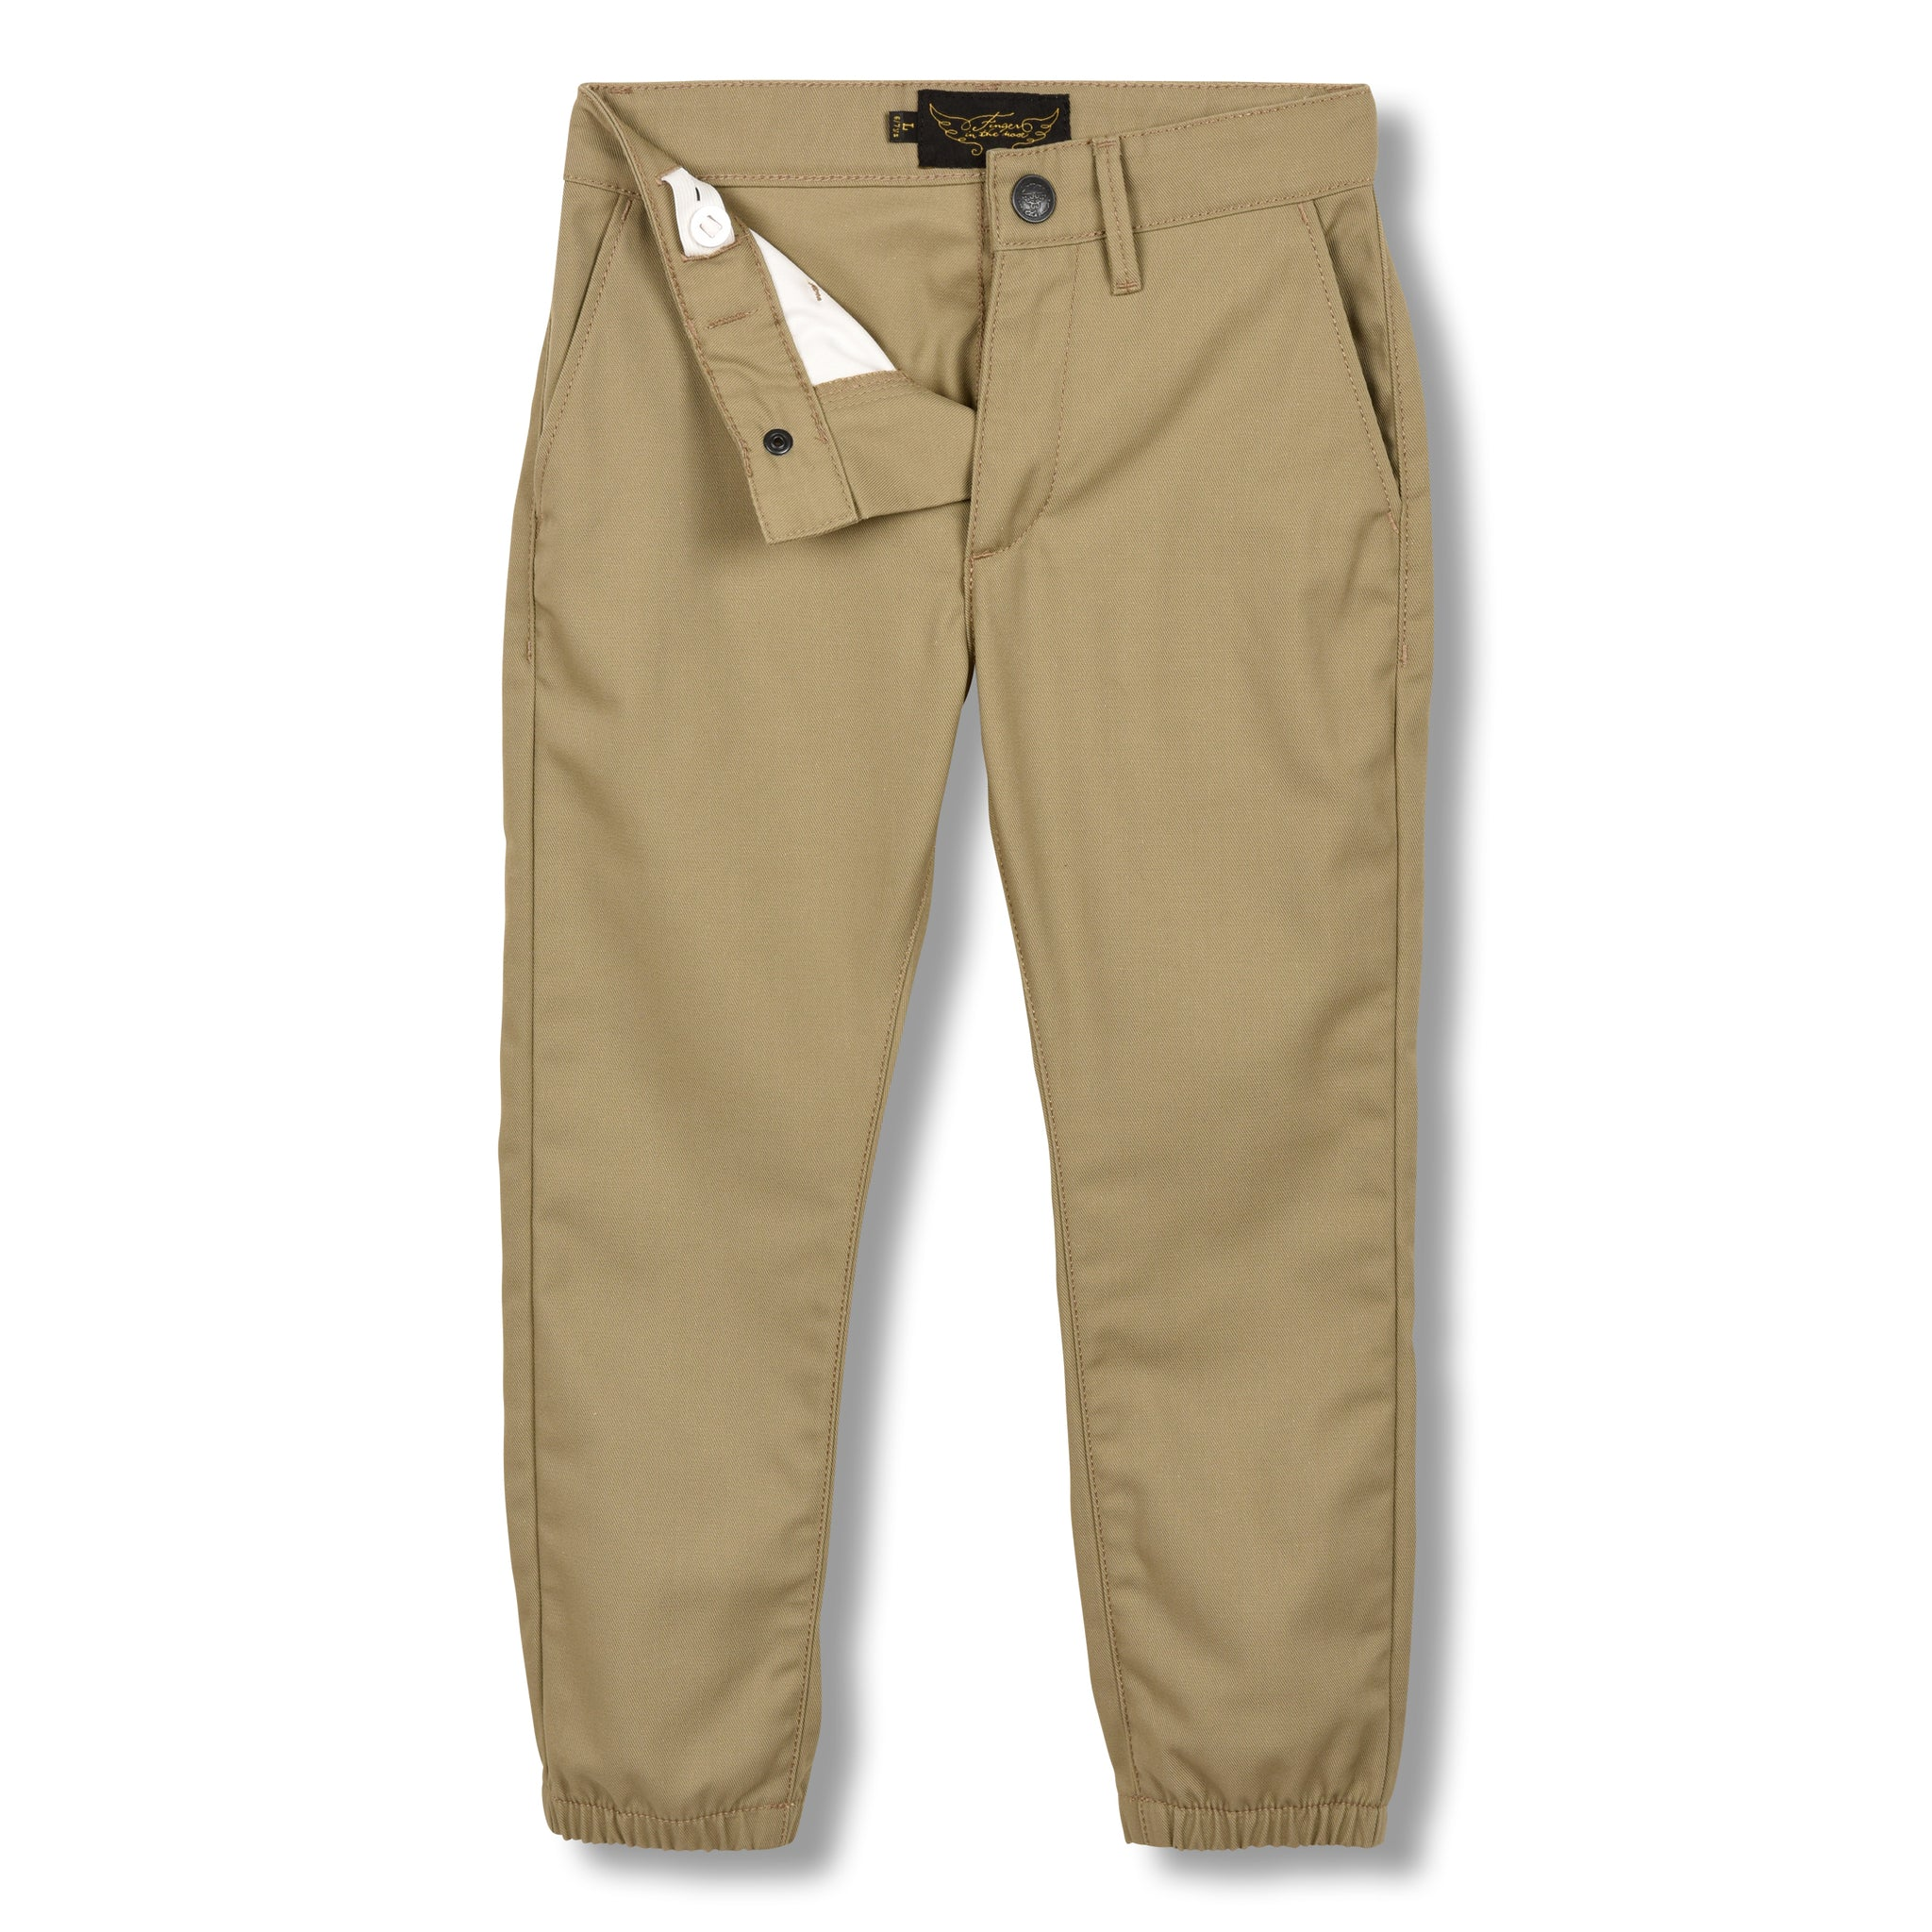 SKATER Linen - Elasticed Bottom Chino Fit Pants 4